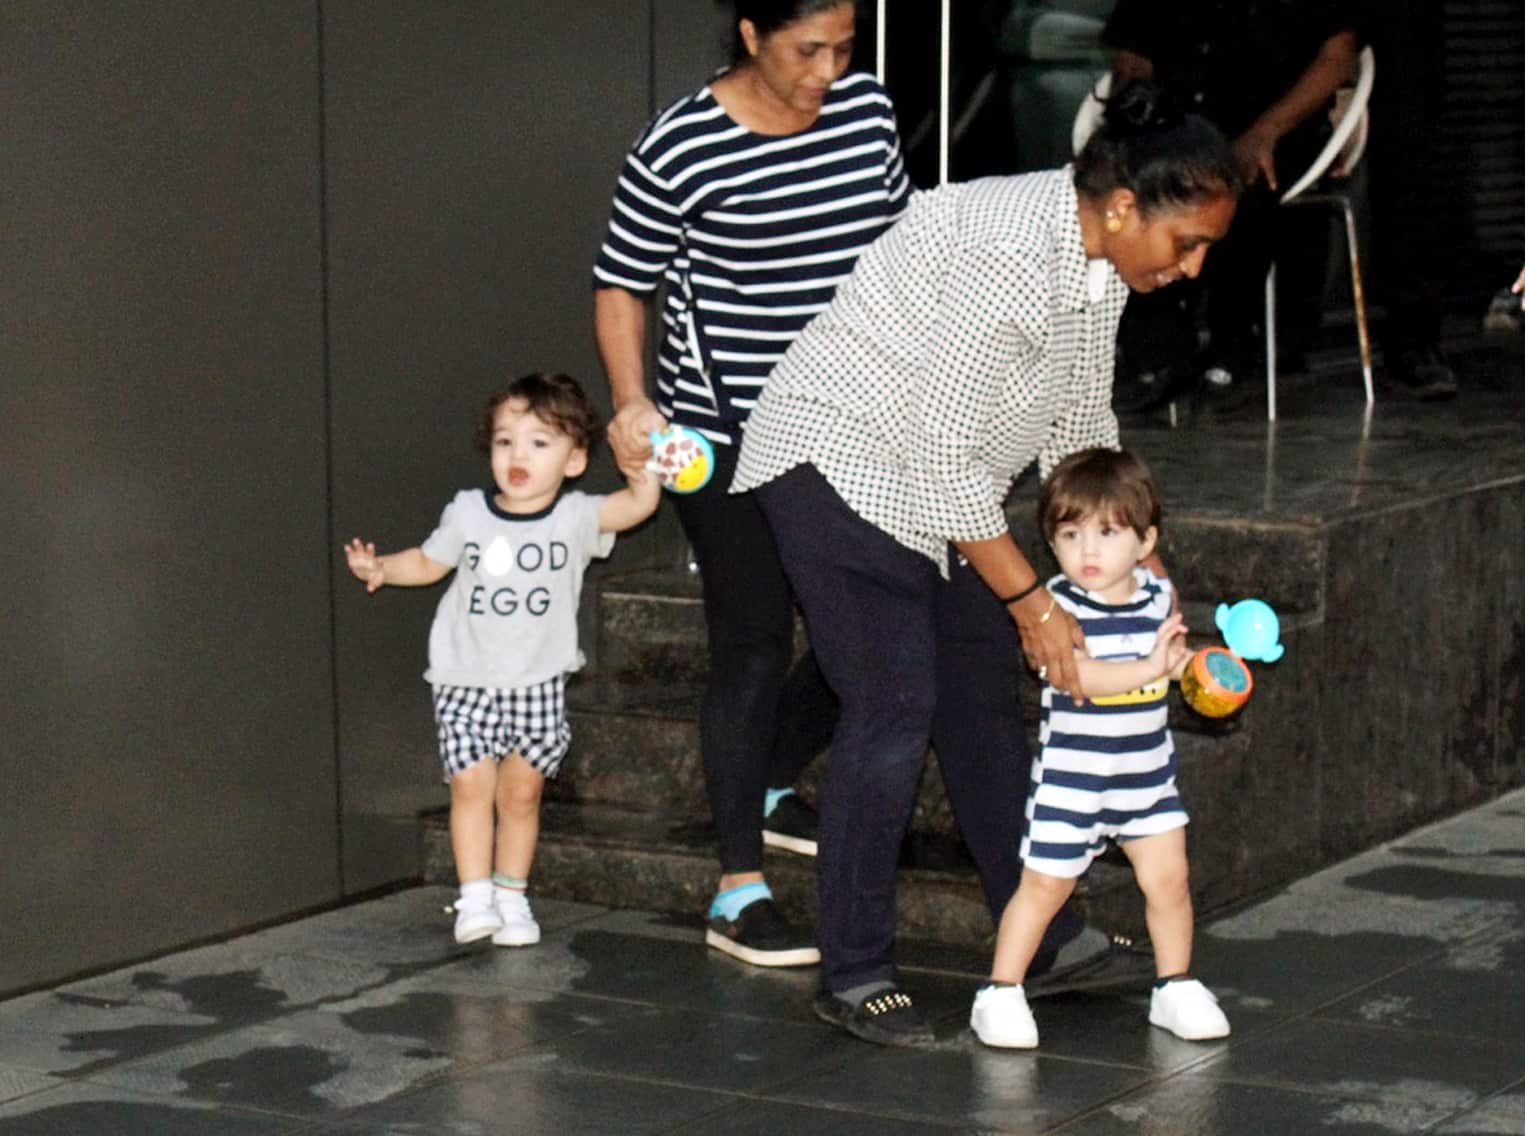 Sunny clicked with kids